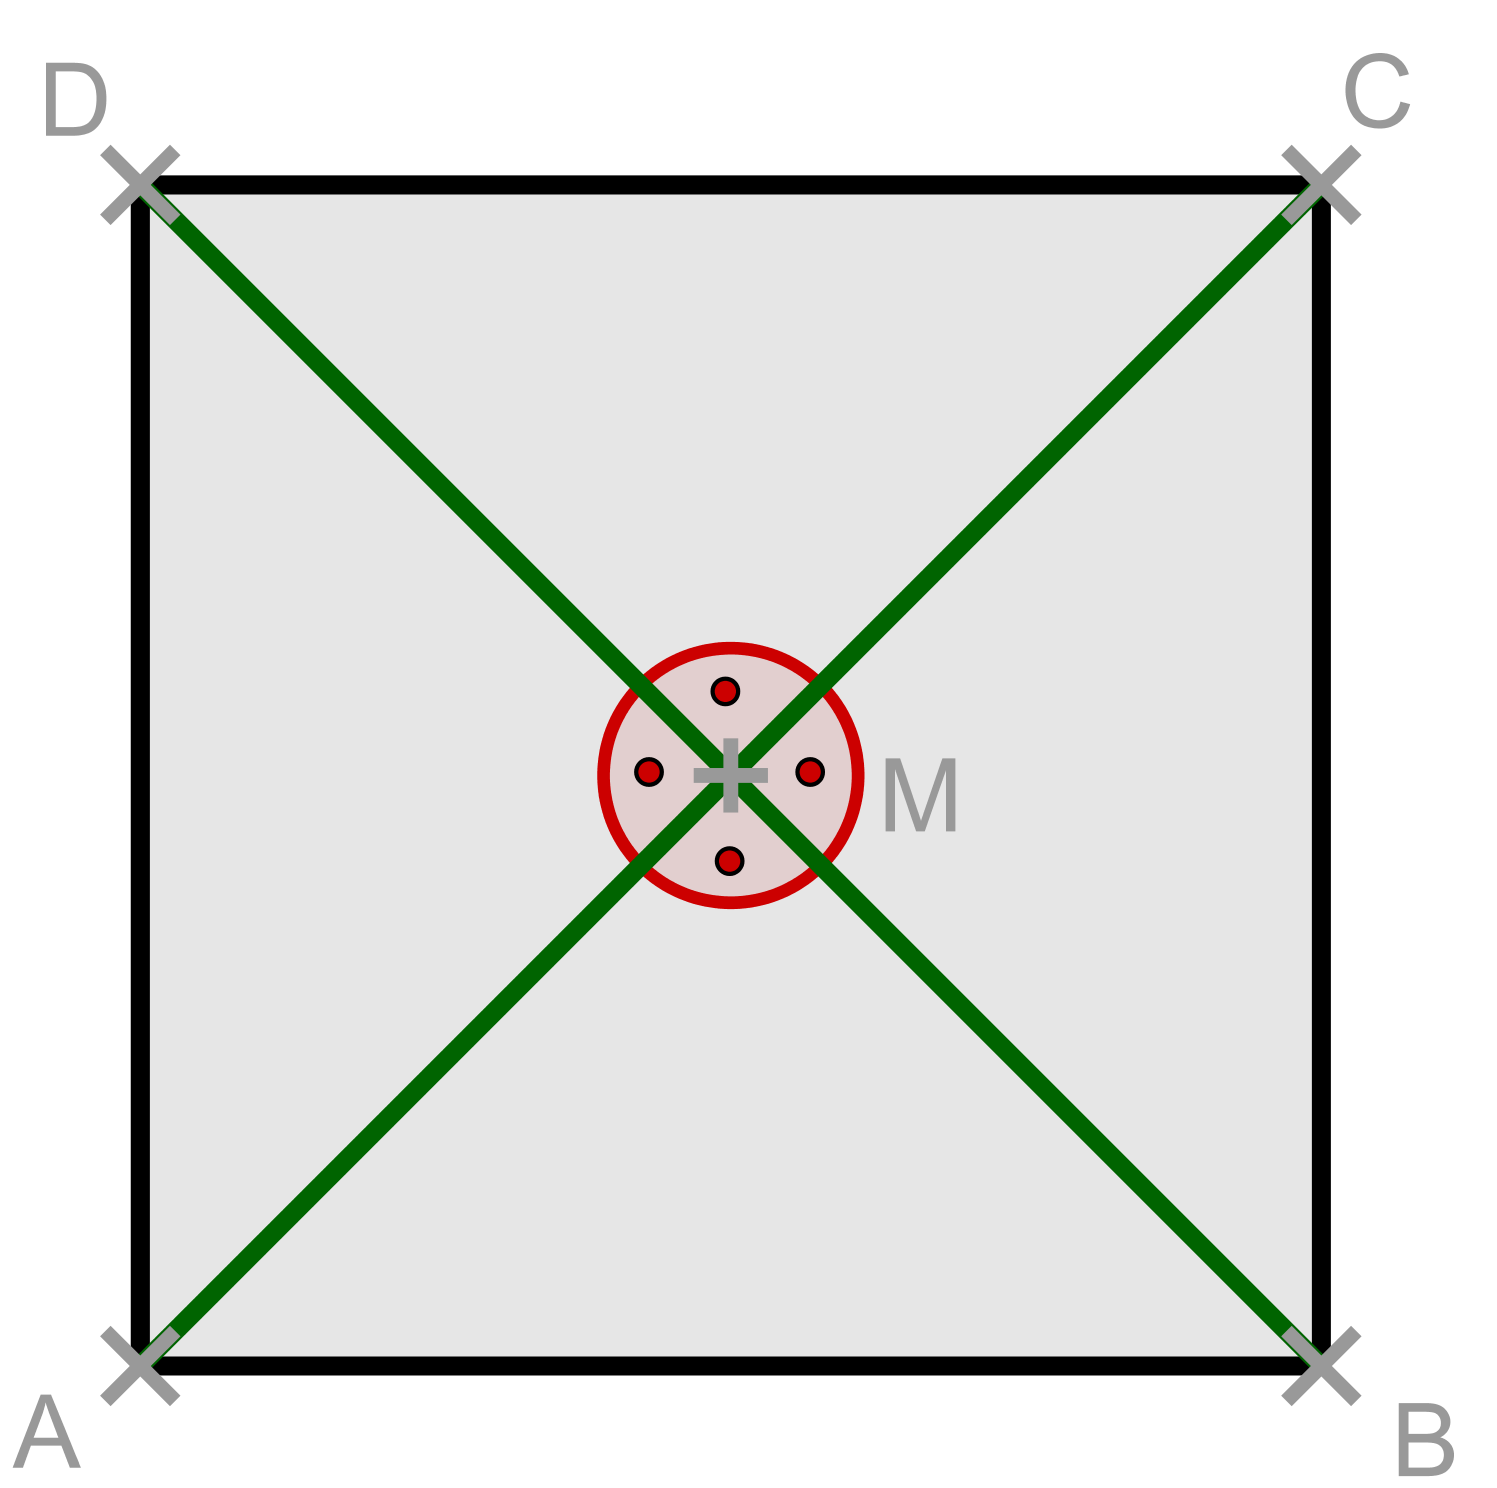 Quadrat Diagonalen